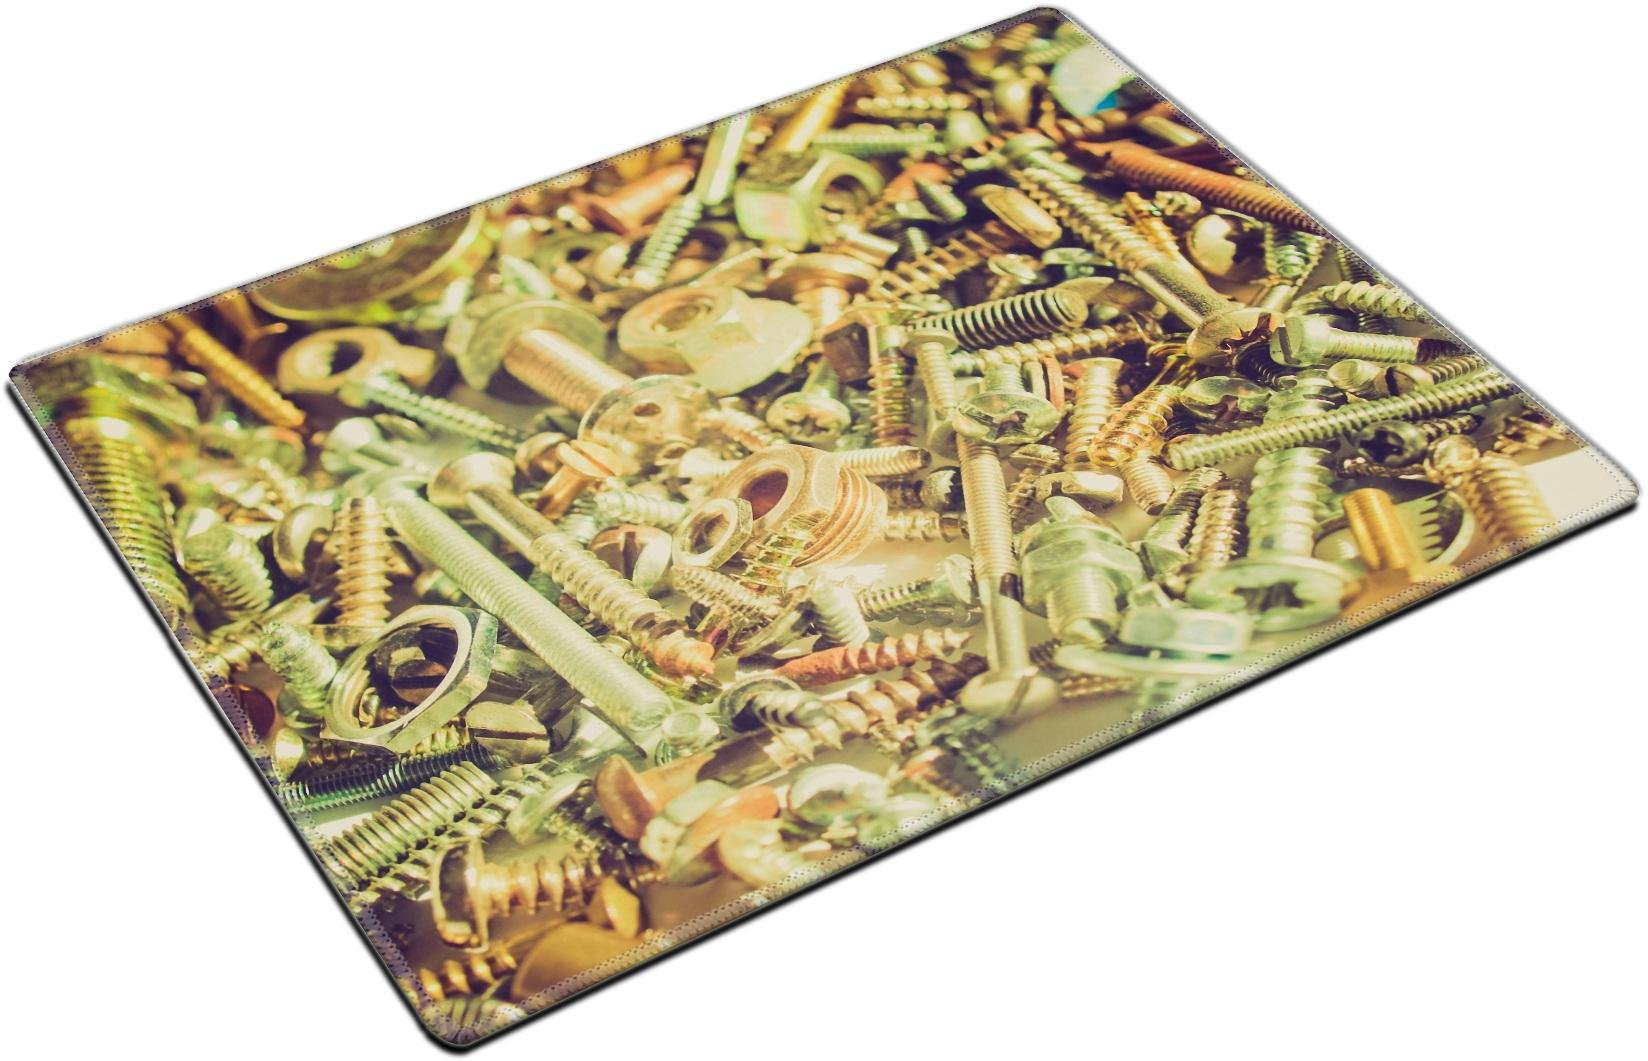 MSD Placemat Non-Slip Natural Rubber Desk Pads Place-mats Design 27040381 Vintage Looking Industrial Steel Hardware Bolts Nuts Screws